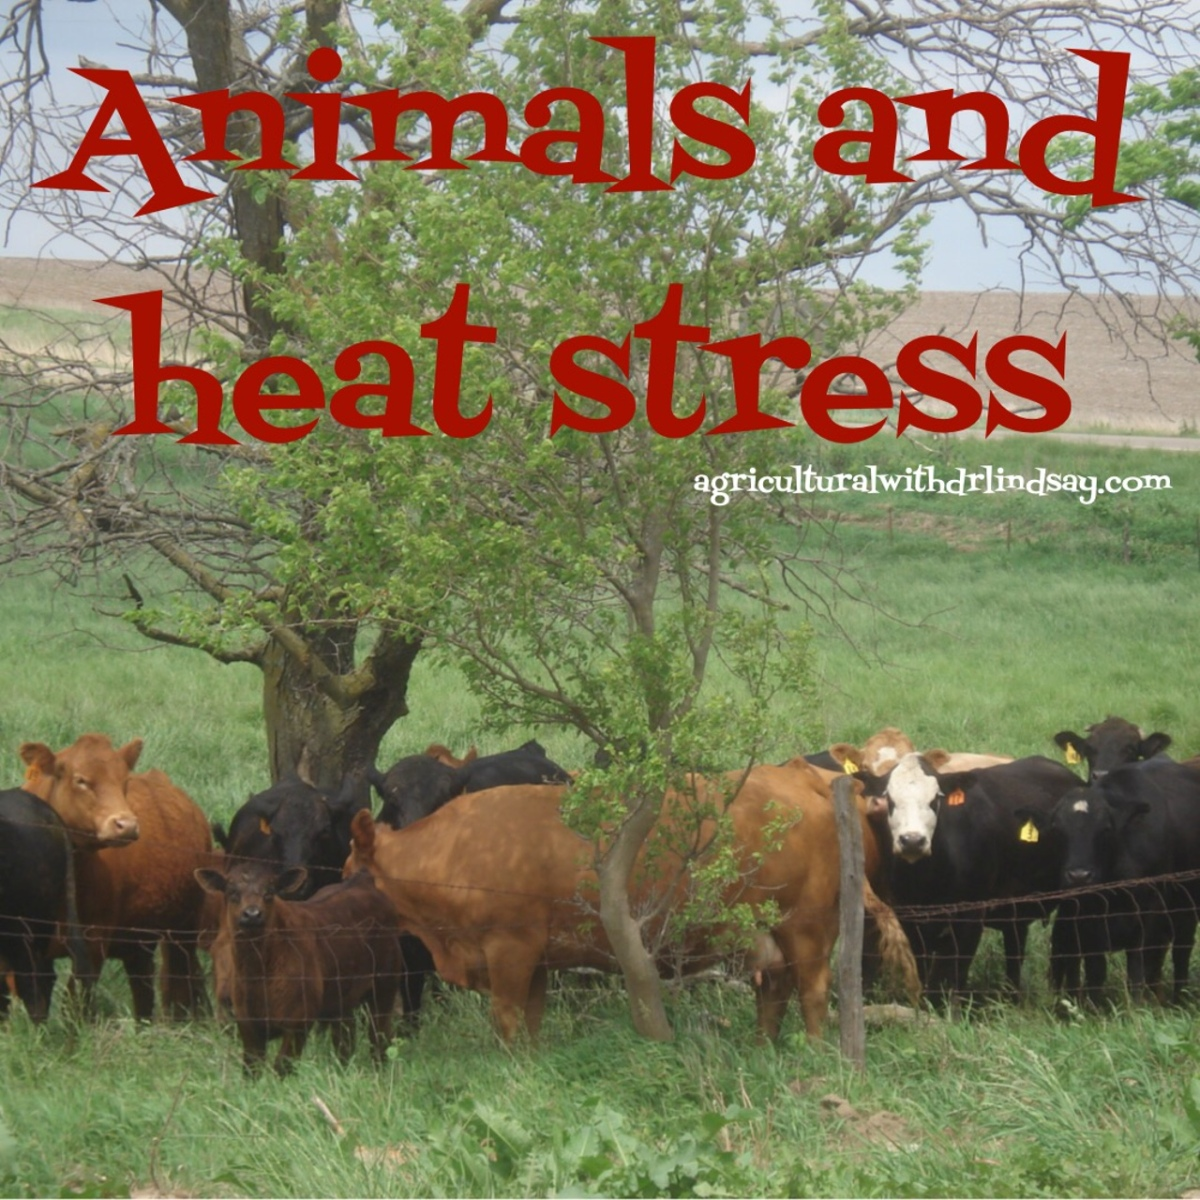 Animals And Heat Stress Agricultural With Dr Lindsay